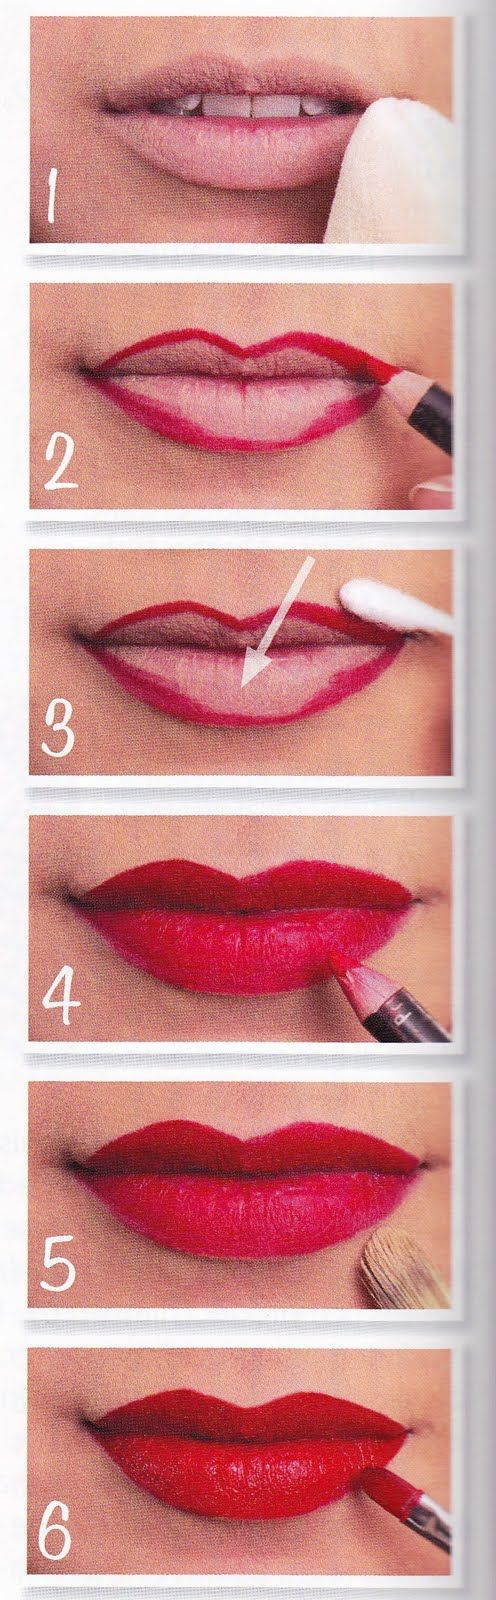 How to properly apply the perfect red lips!